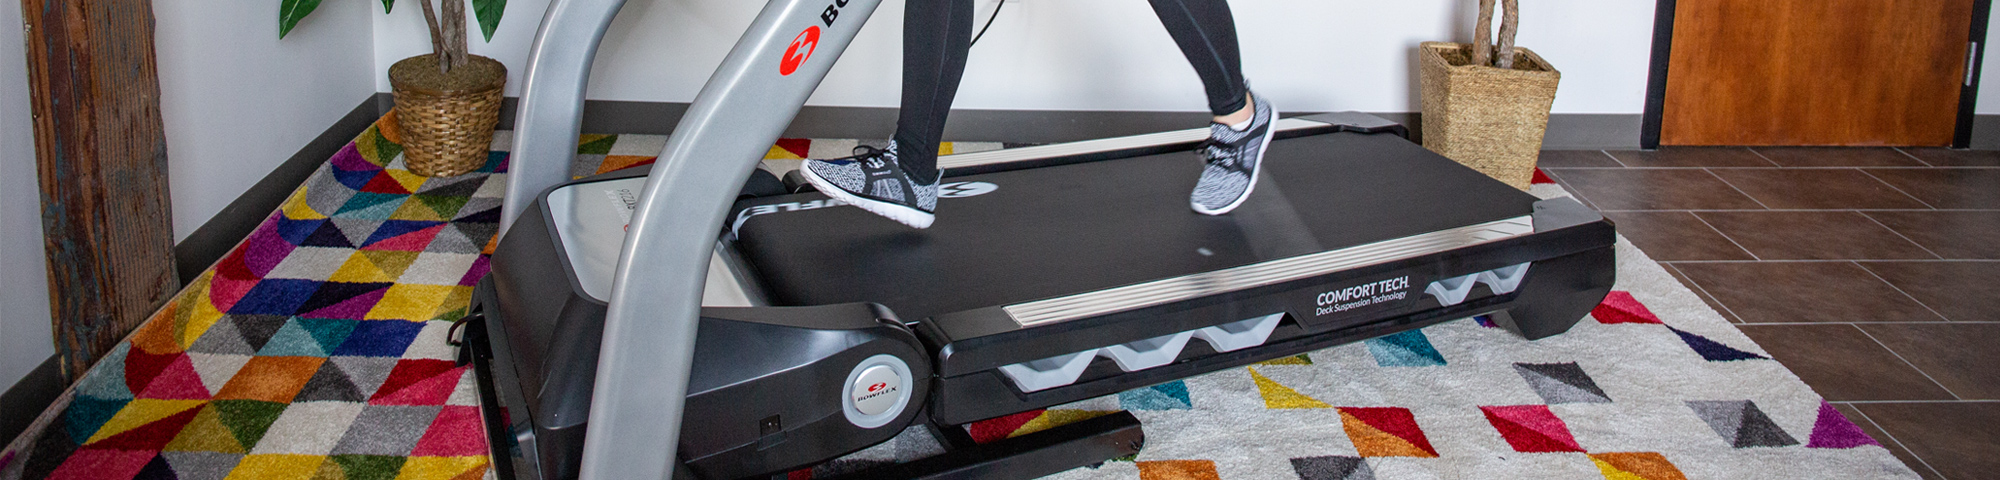 Best treadmills 2019: the top running machines to help keep you fit